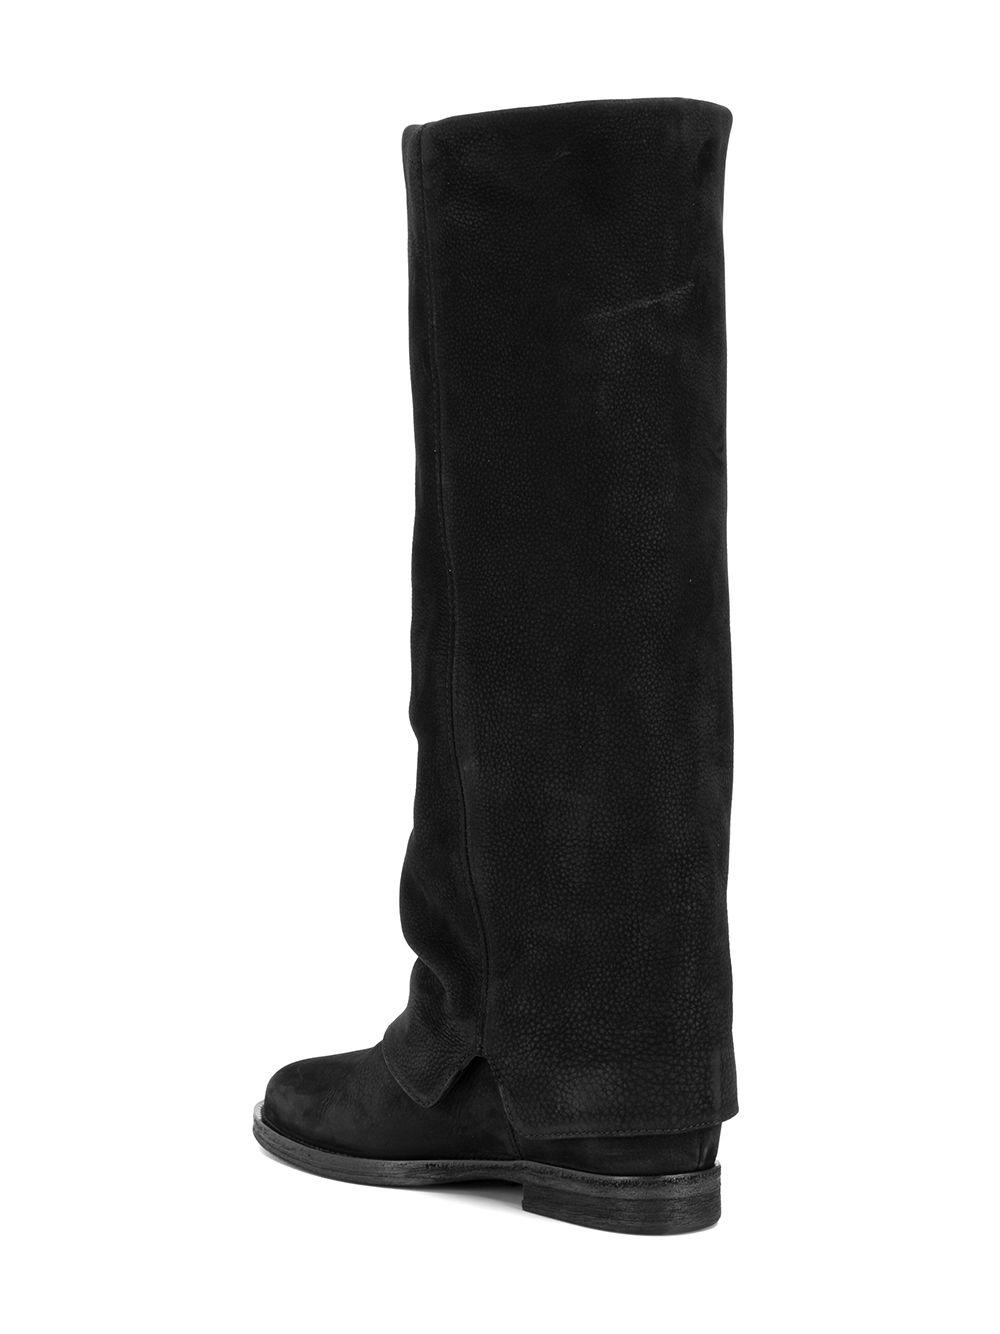 Via Roma 15 Leather Foldover Riding Boots in Black